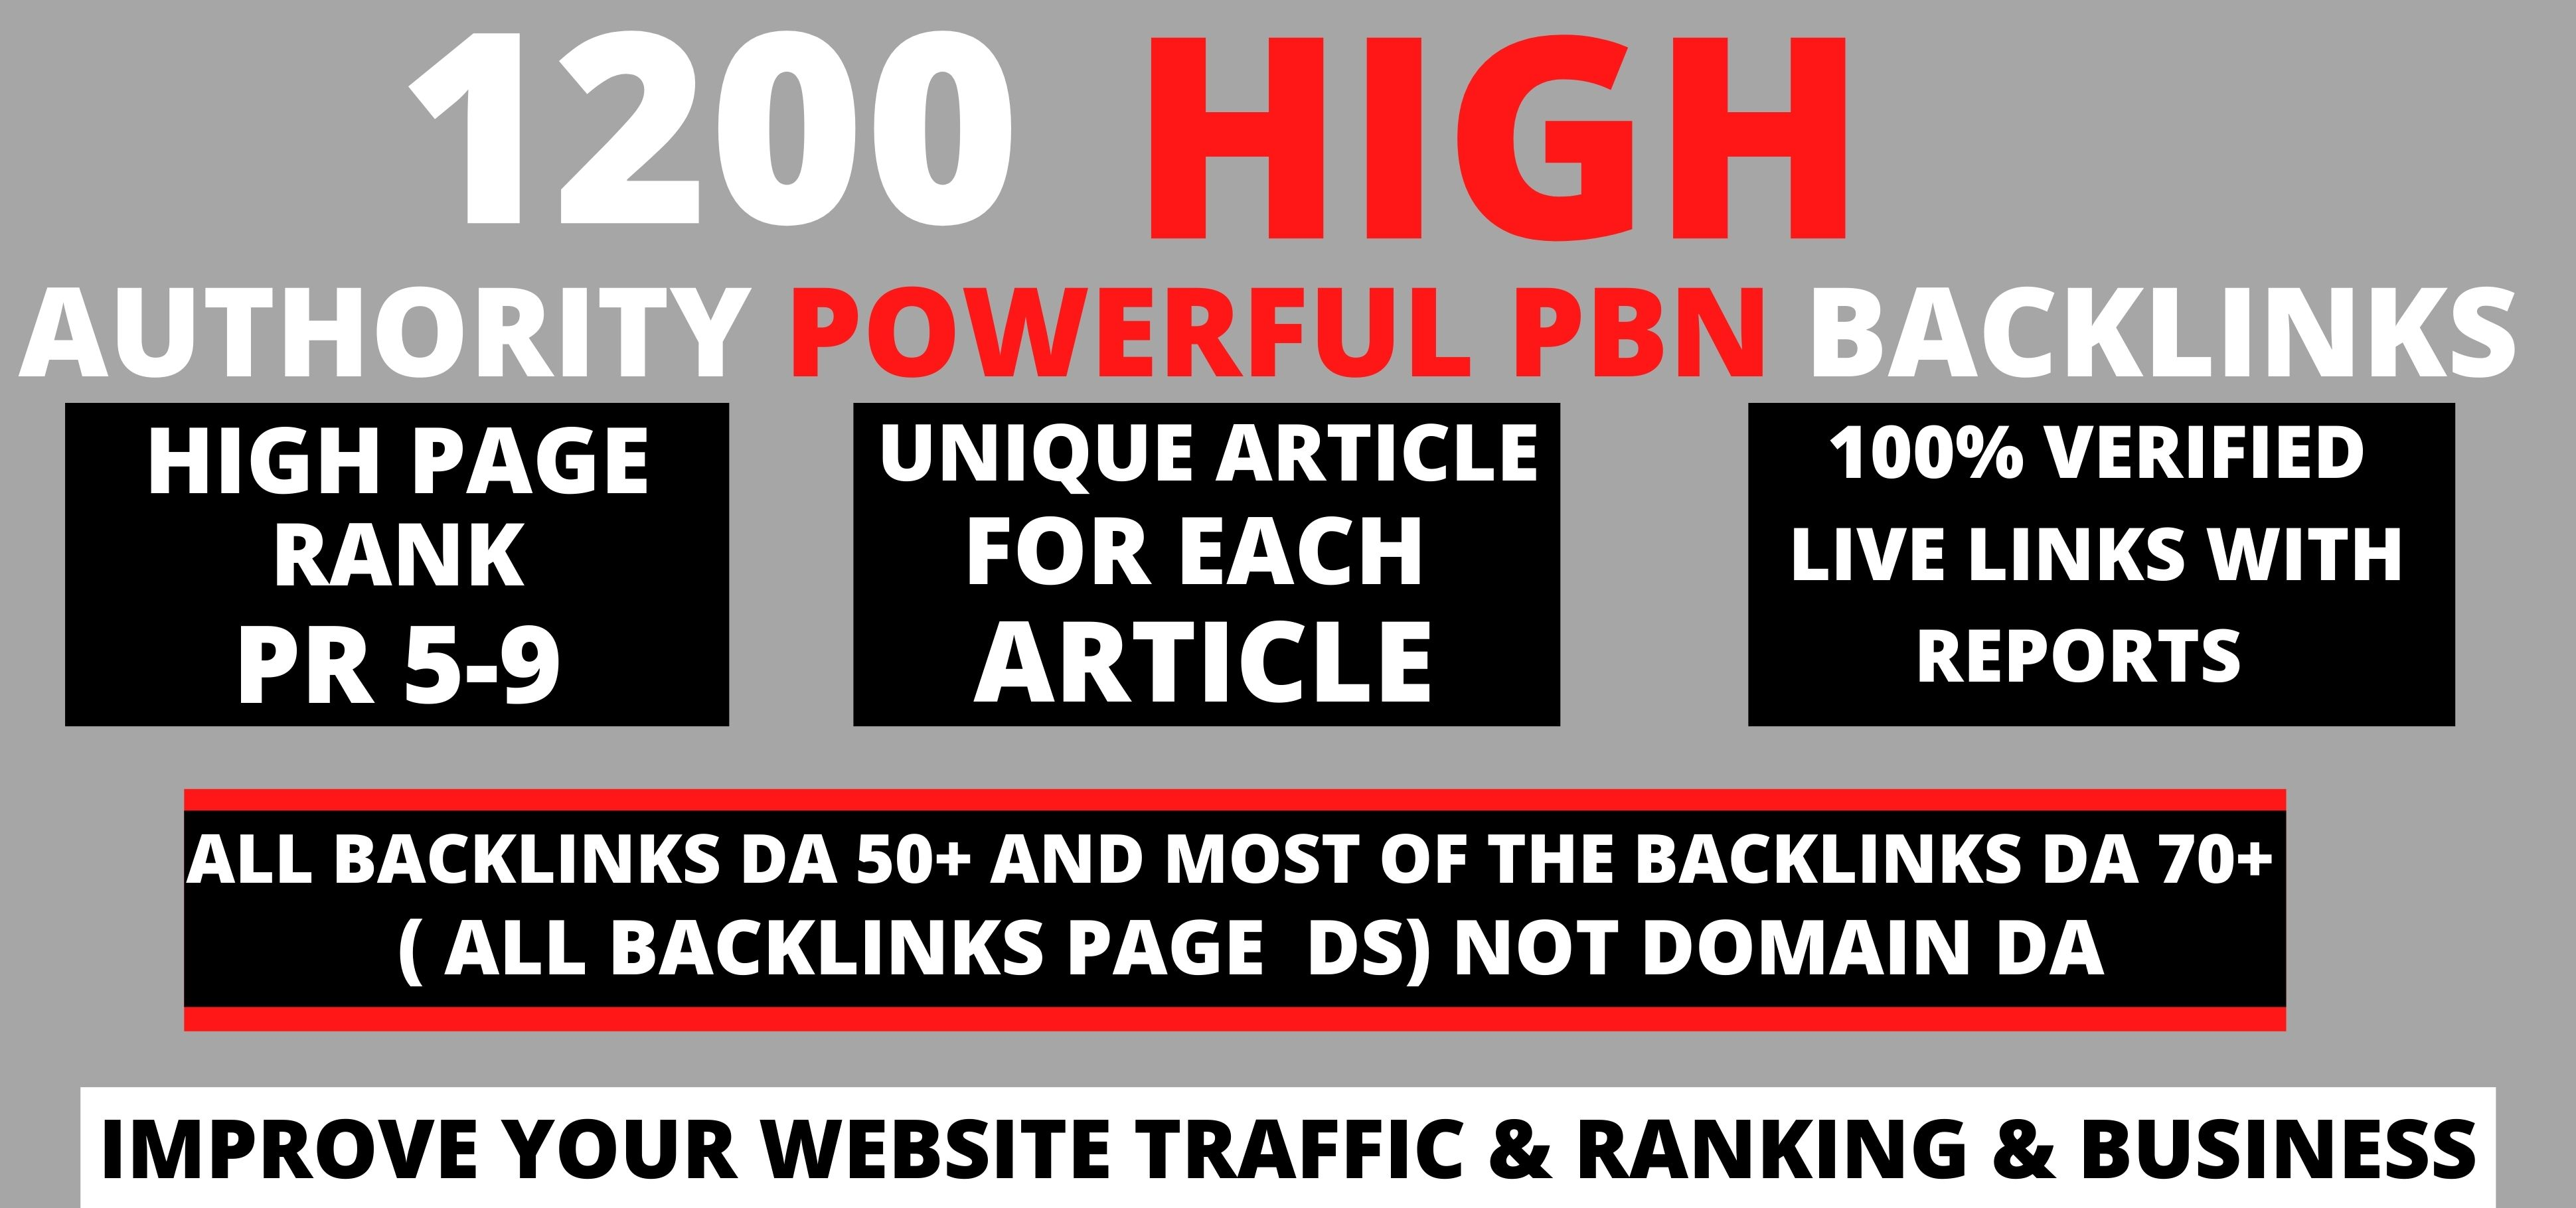 Get Extreme1200+PBN Backlink in your website homepage with HIGH DA/PA/TF/CF with unique website